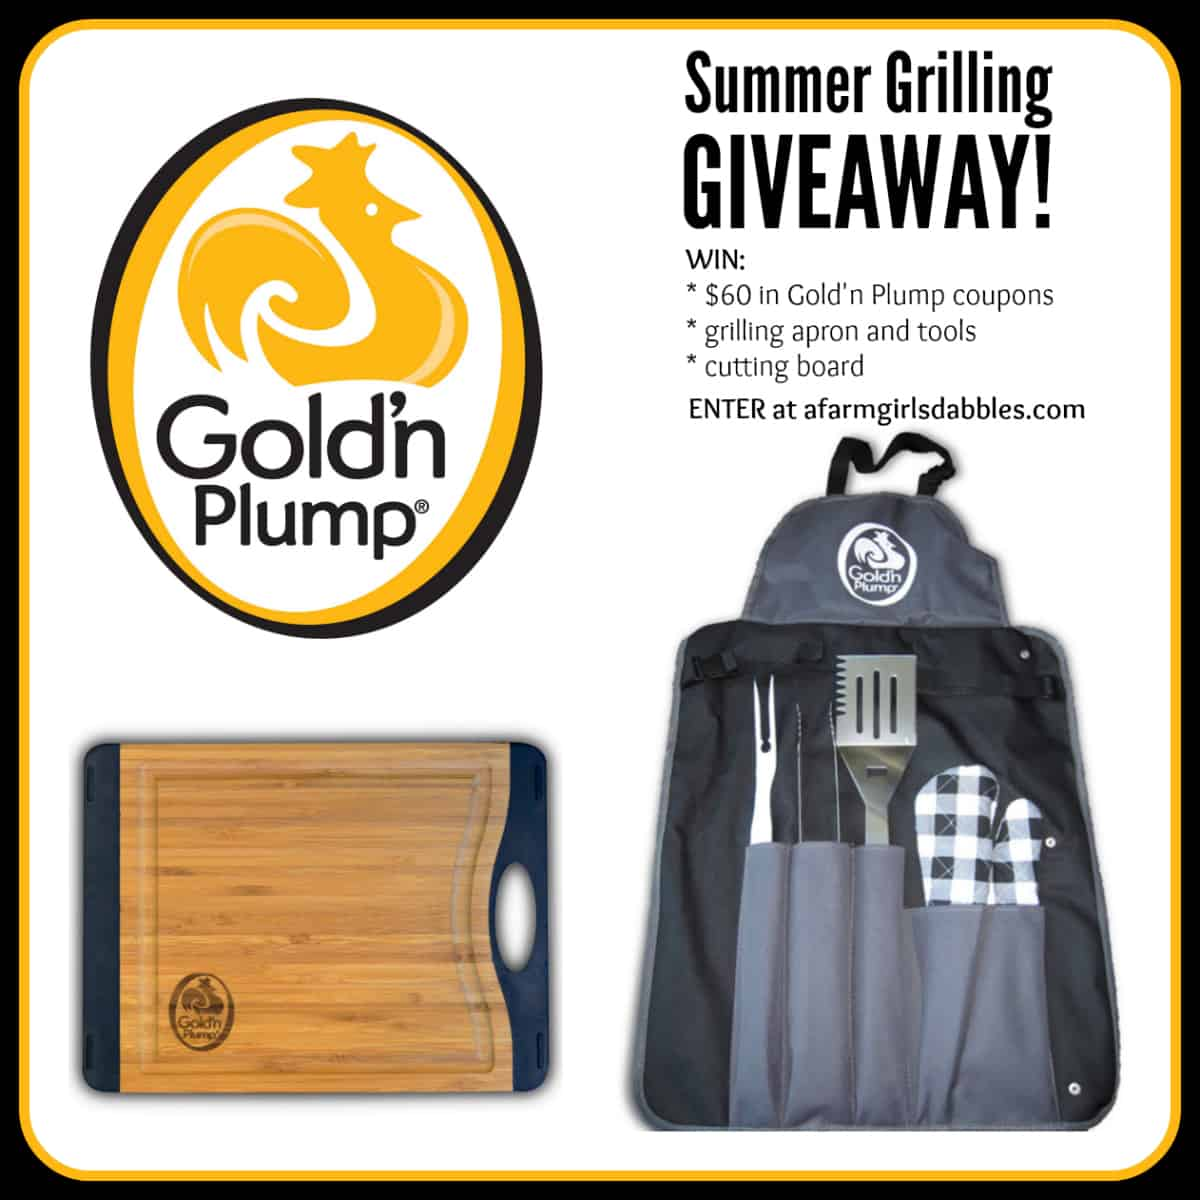 Summer Grilling #Giveaway from Gold'n Plump - enter at afarmgirlsdabbles.com